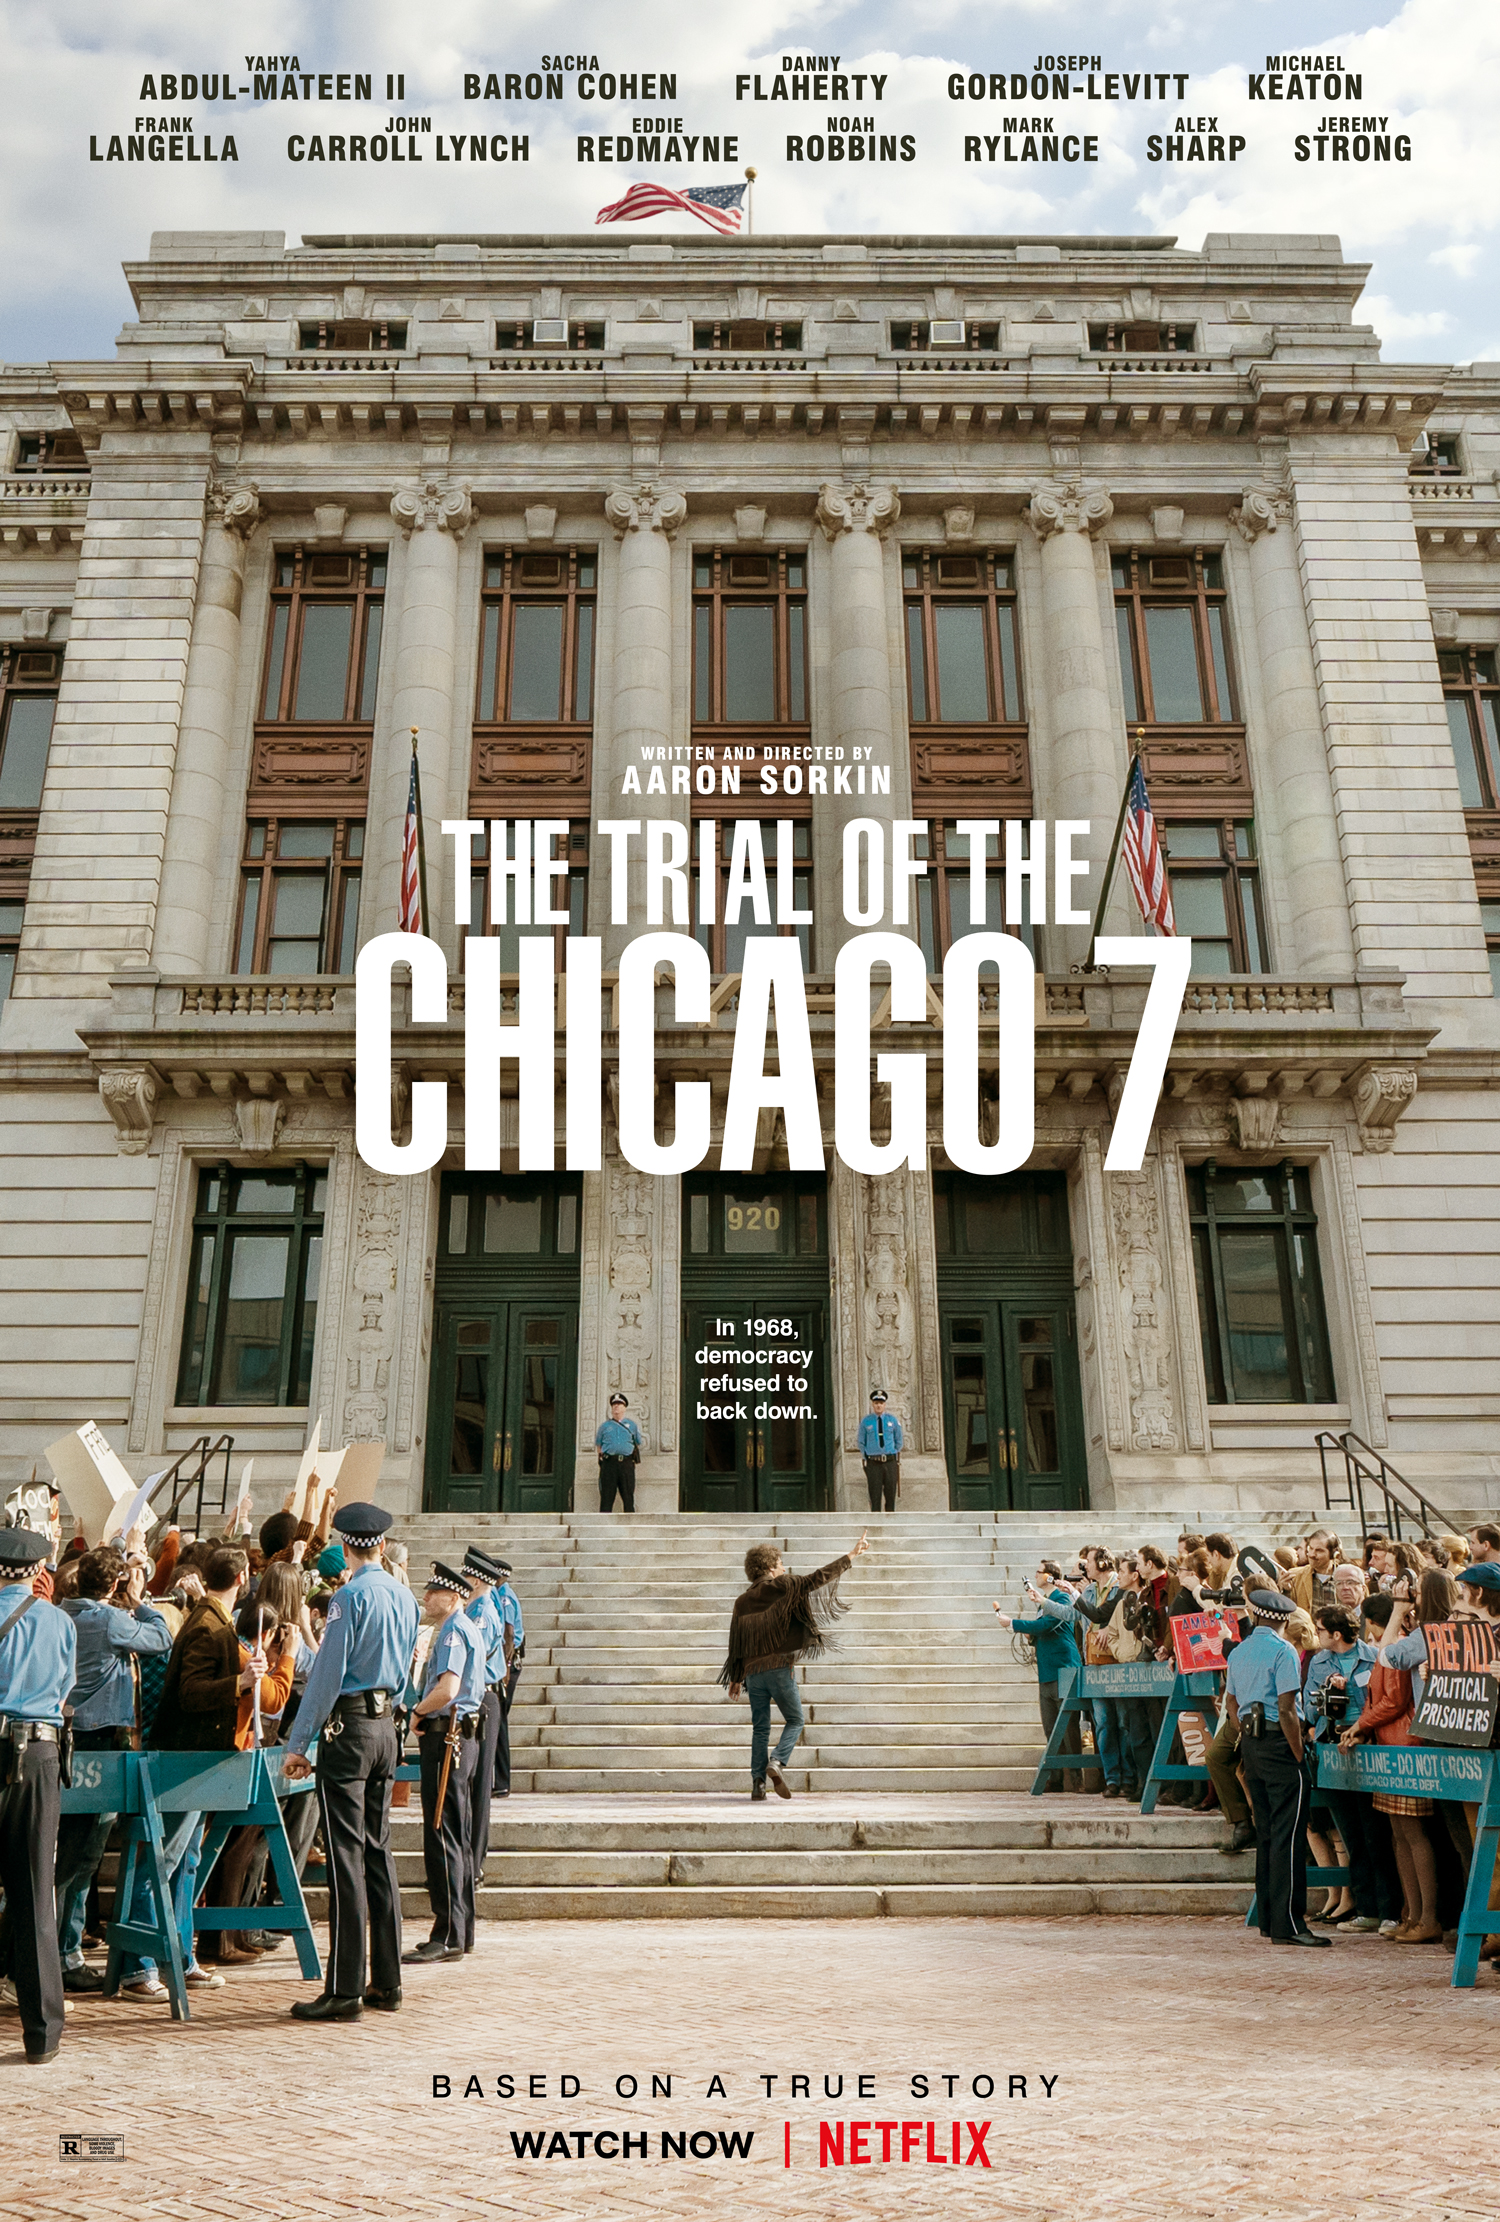 Promotional poster for THE TRIAL OF THE CHICAGO 7